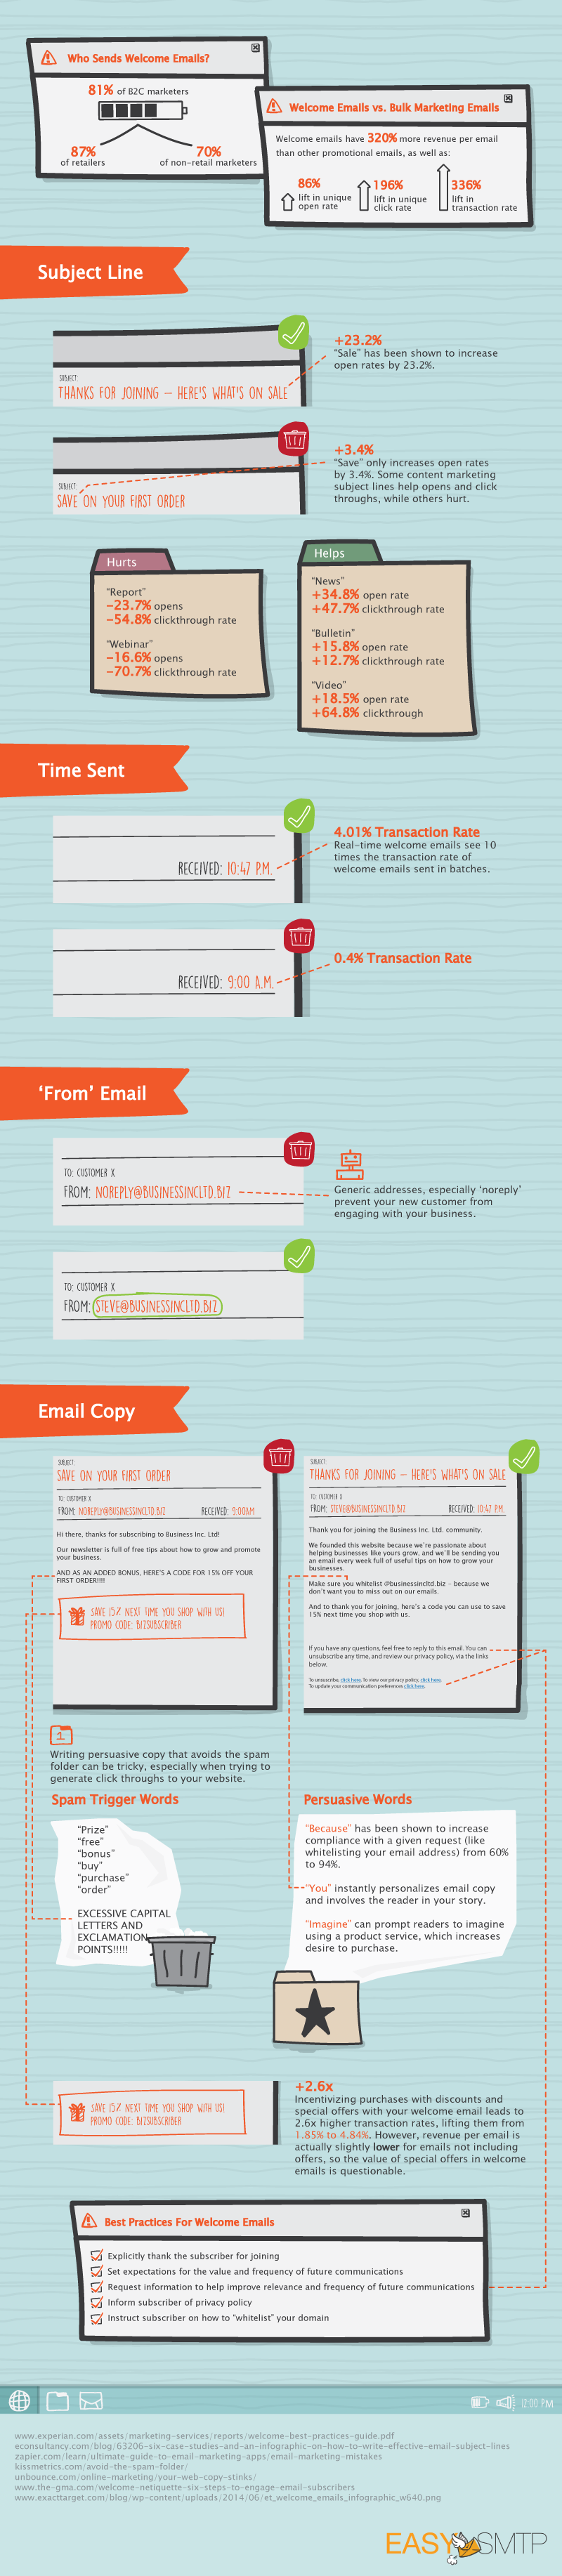 optimize-welcome-email